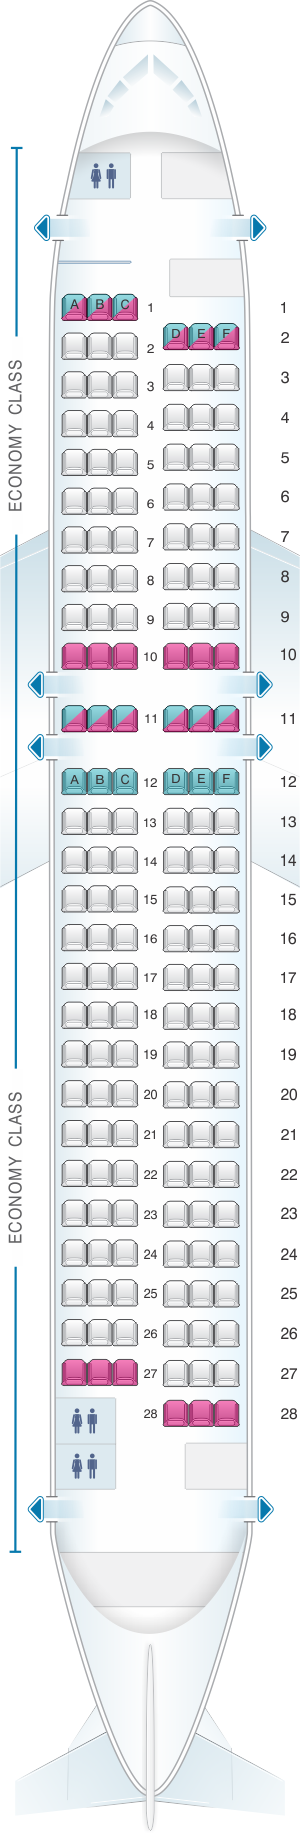 Seat map for Asiana Airlines Airbus A320 200 159PAX